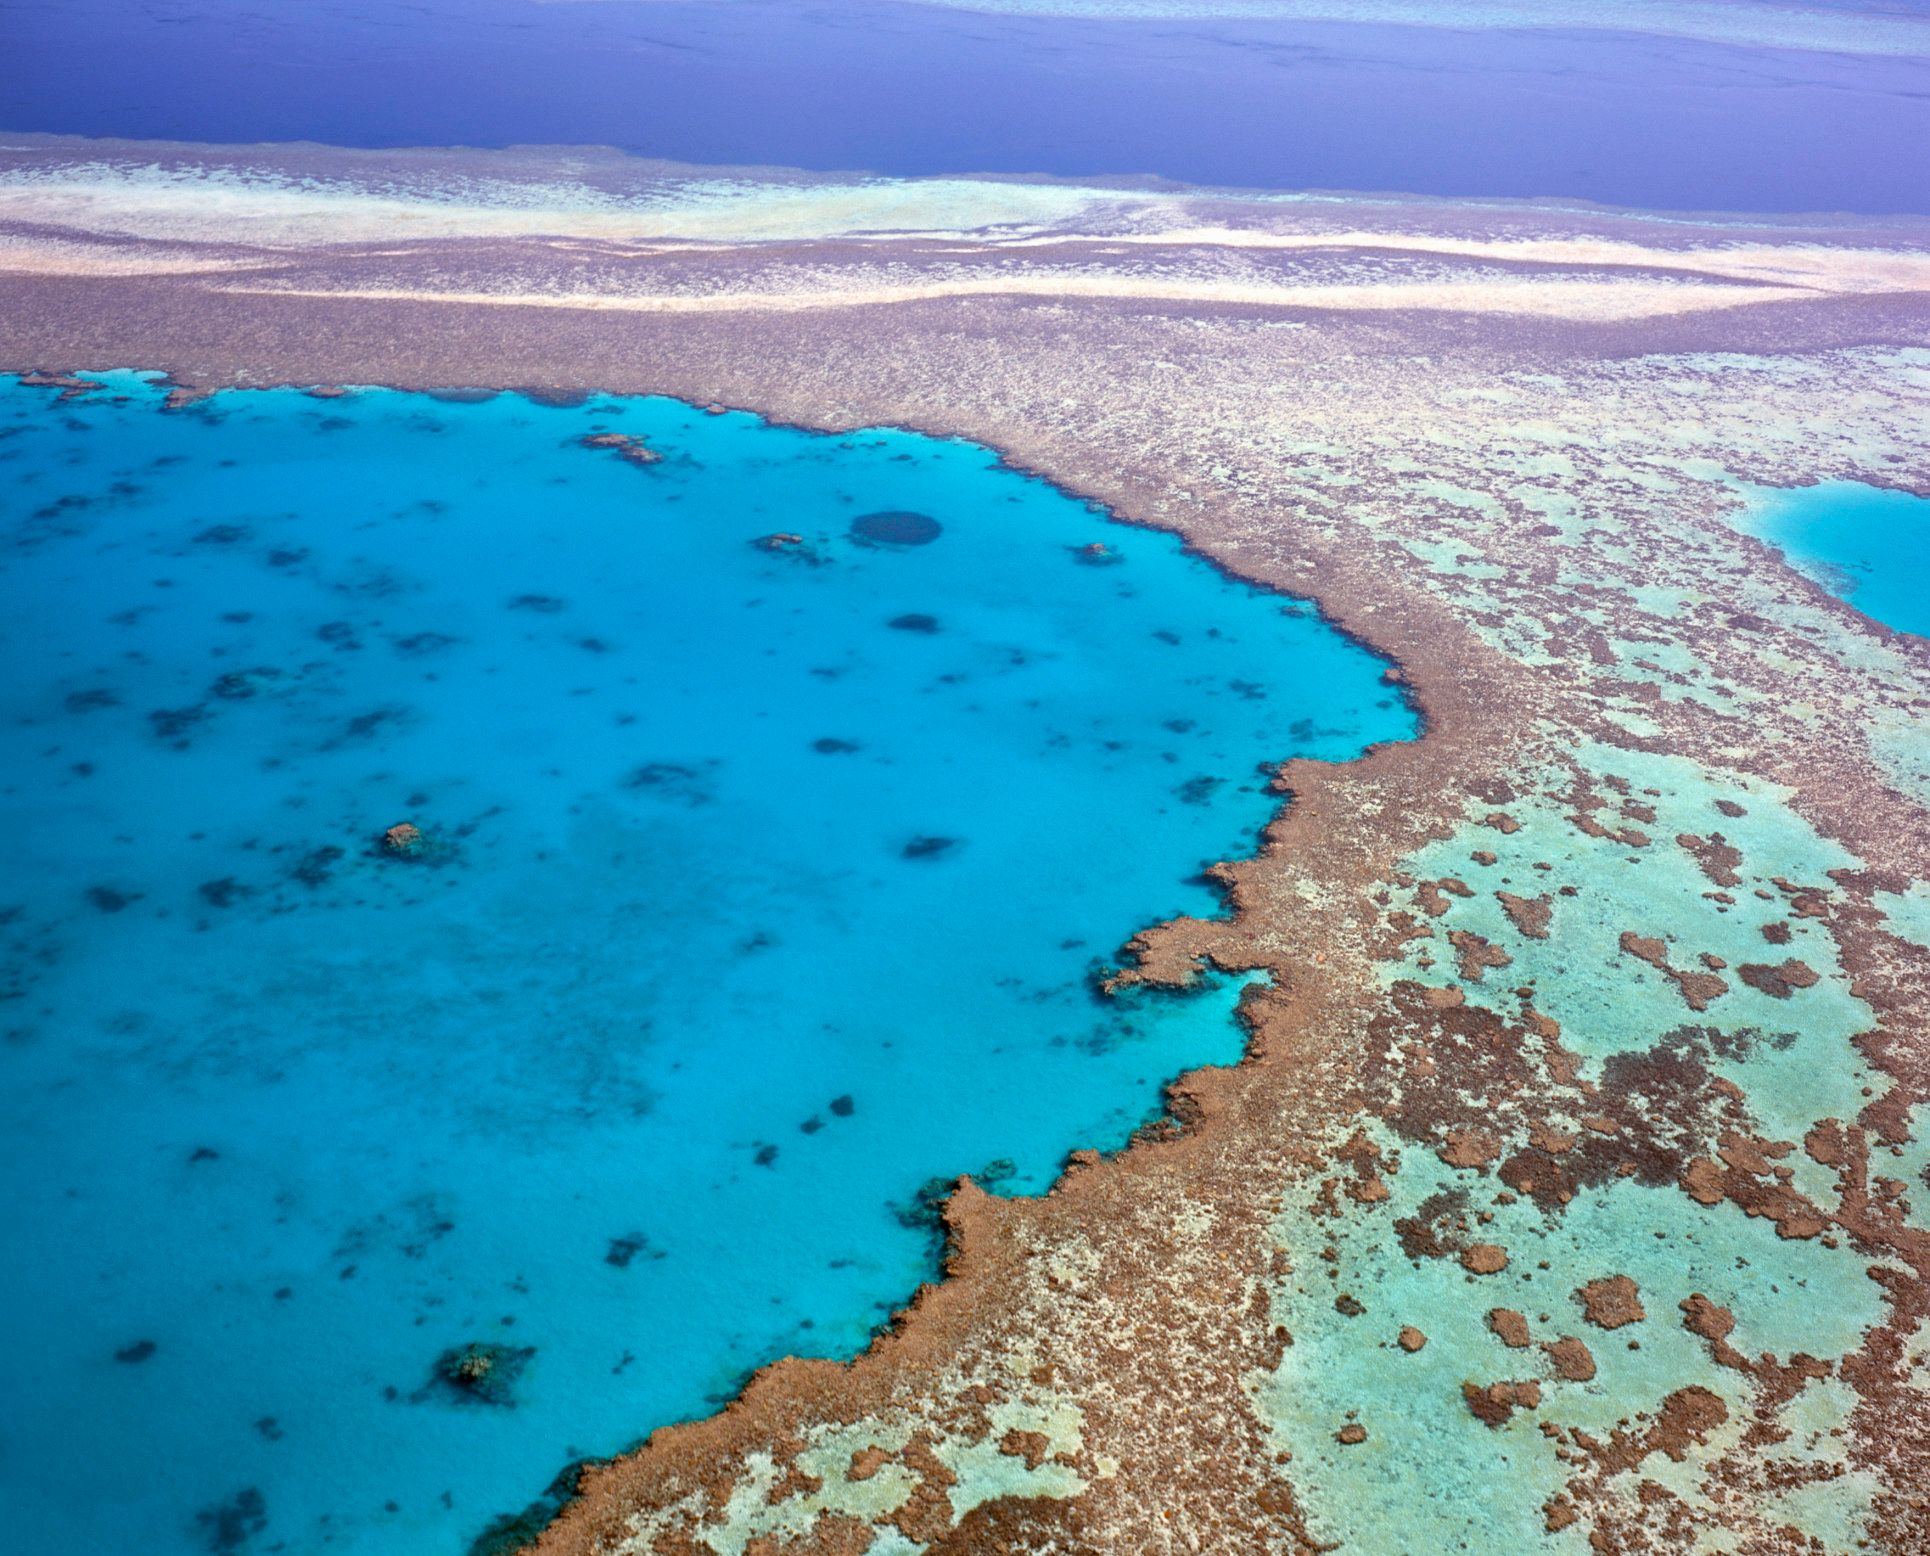 Australia announces record investment in Great Barrier Reef